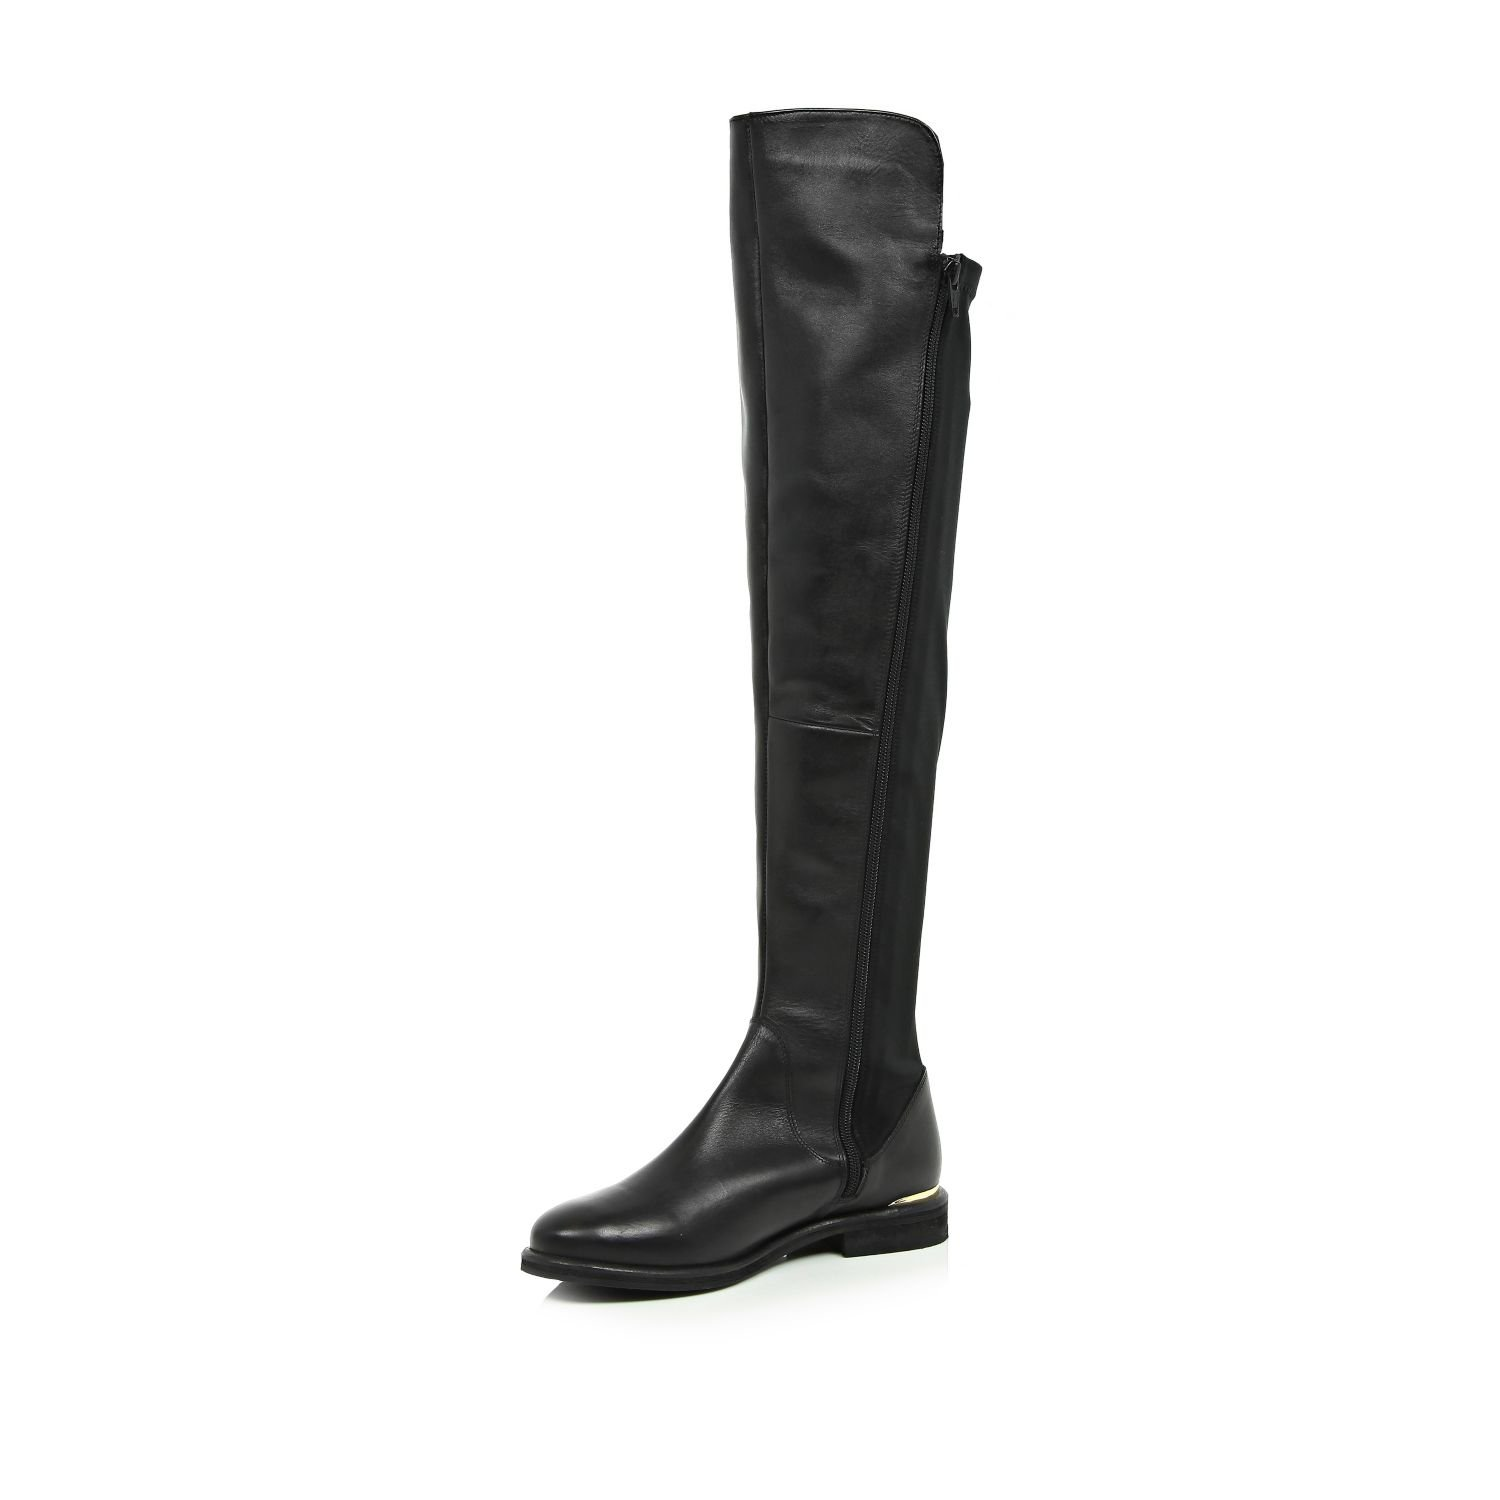 5fcab481df3 River Island Black Leather Over The Knee Boots in Black - Lyst